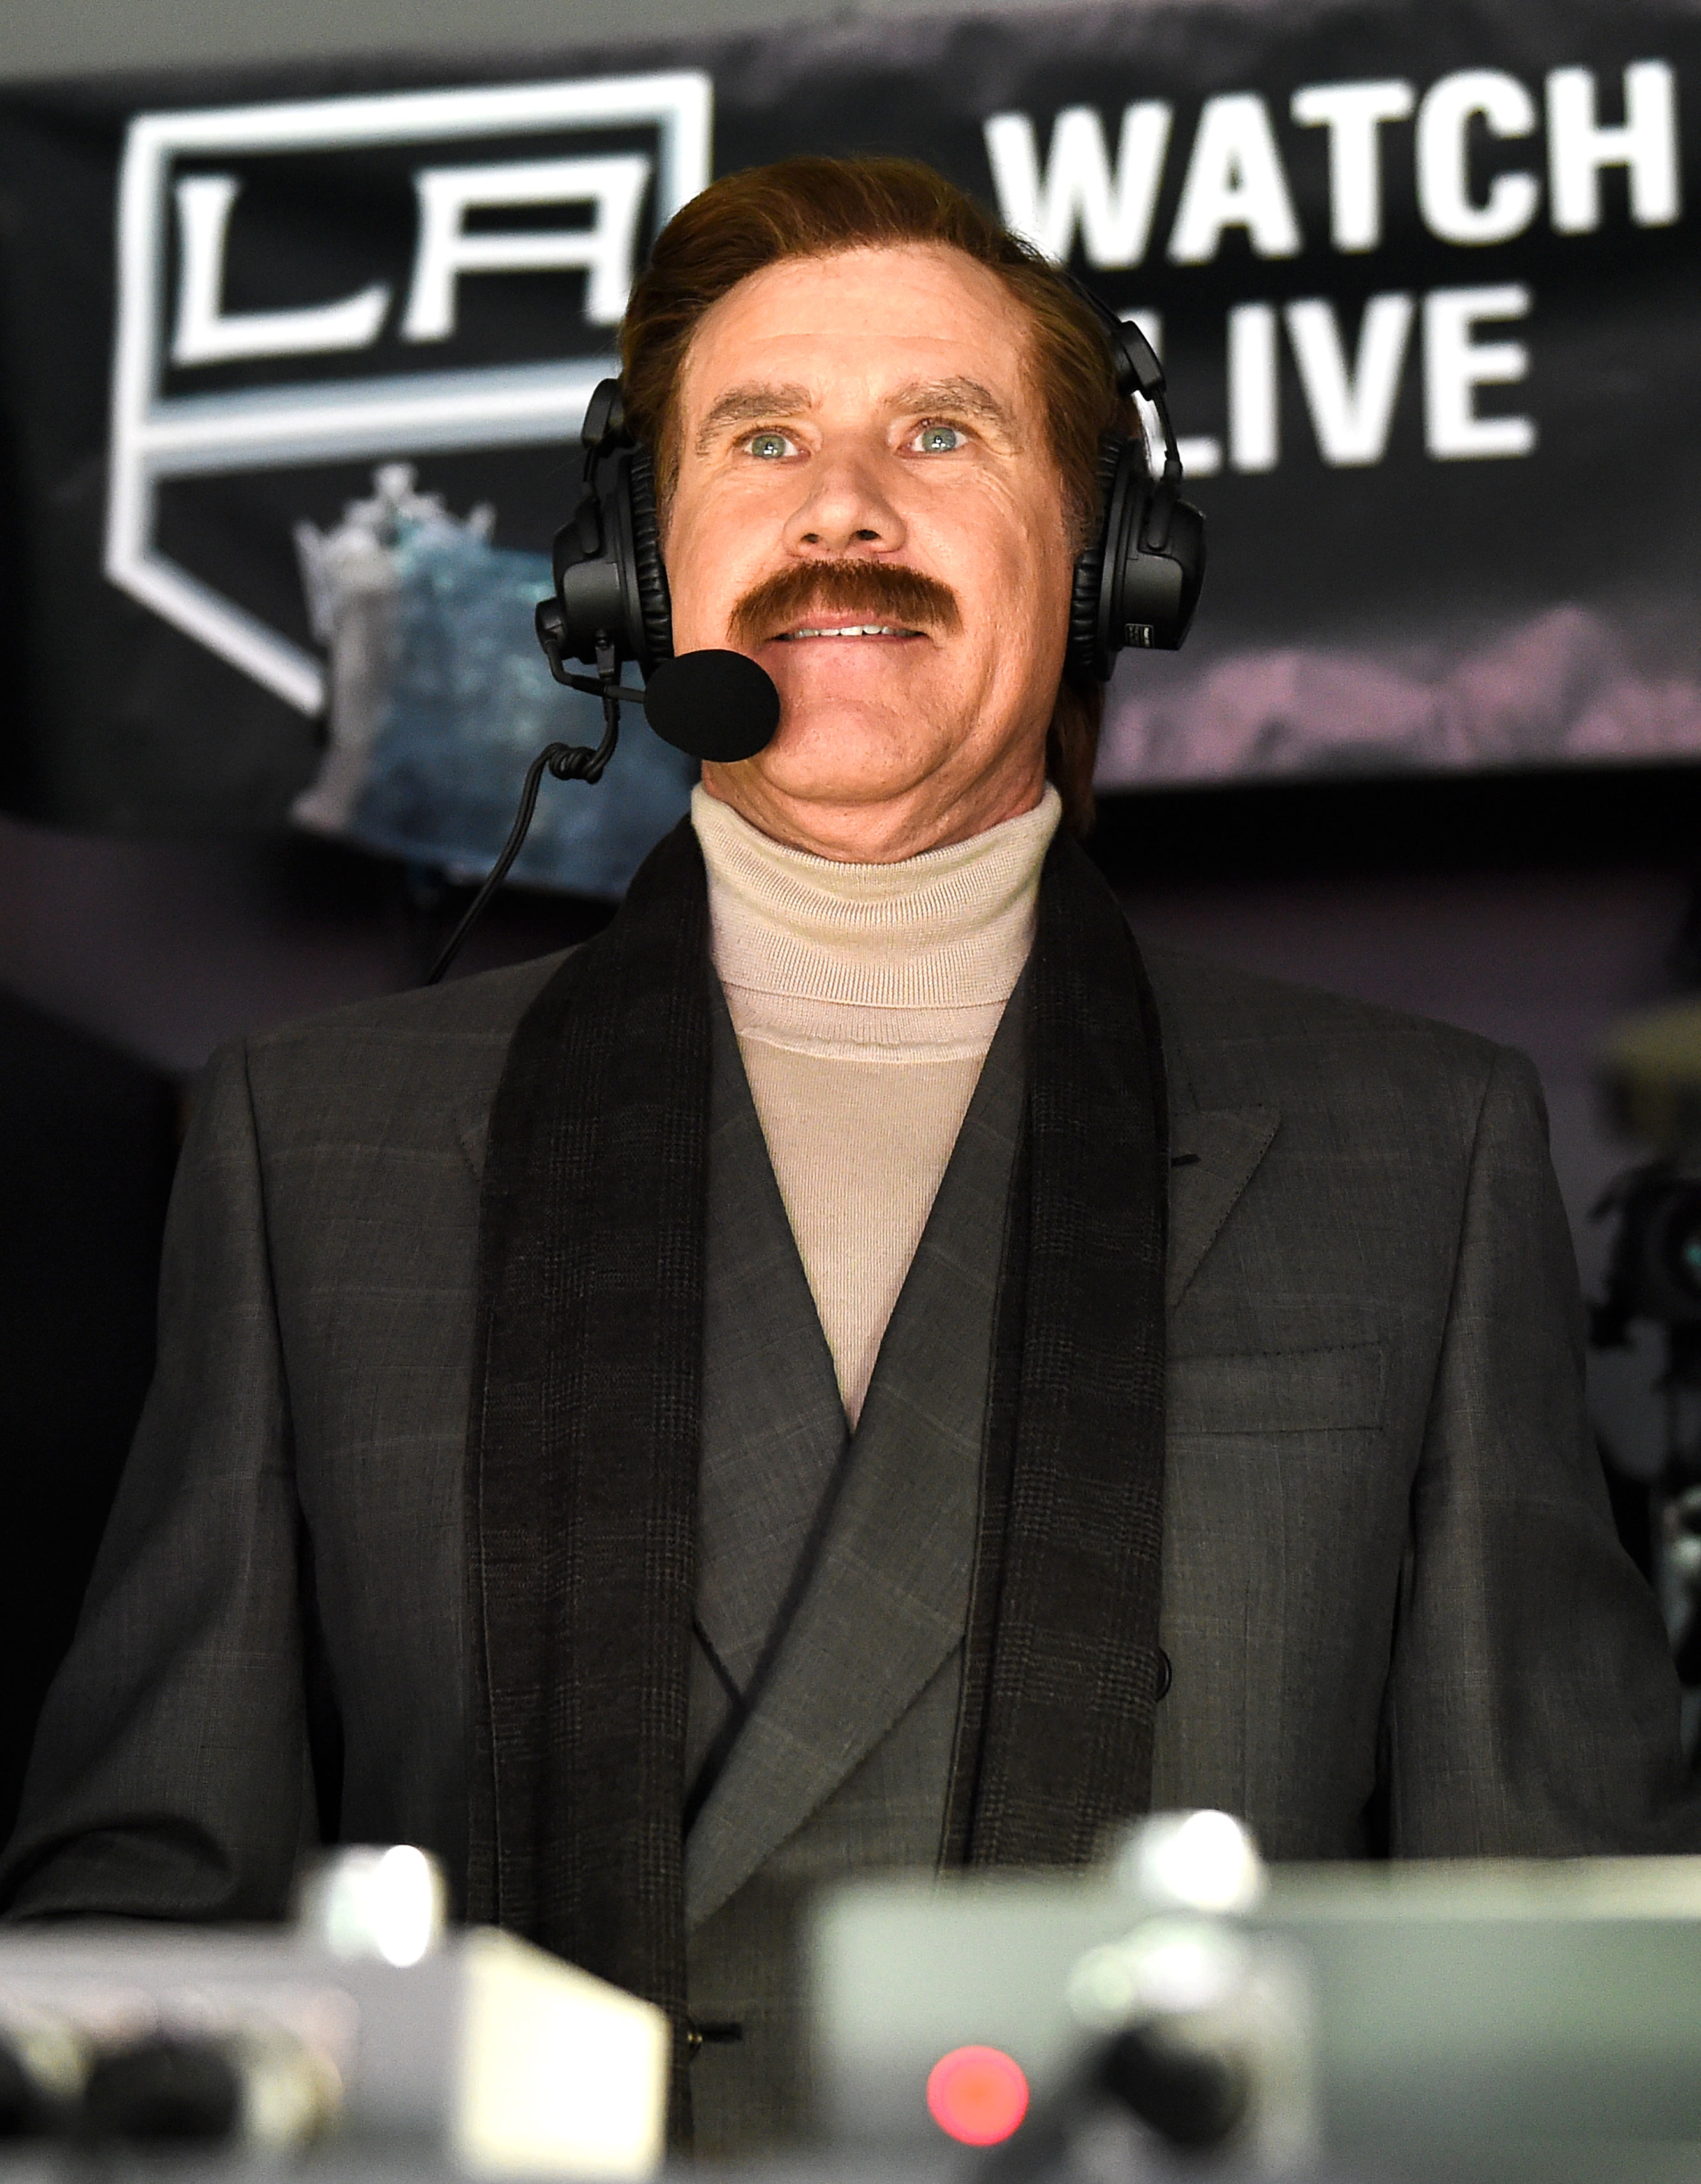 Stay Classy! Will Ferrell Revives Anchorman's Ron Burgundy Hockey Game - Will Ferrell, in character as Ron Burgundy, calls the game between the San Jose Sharks vs. the Los Angeles Kings at on March 21, 2019 in Los Angeles, California.